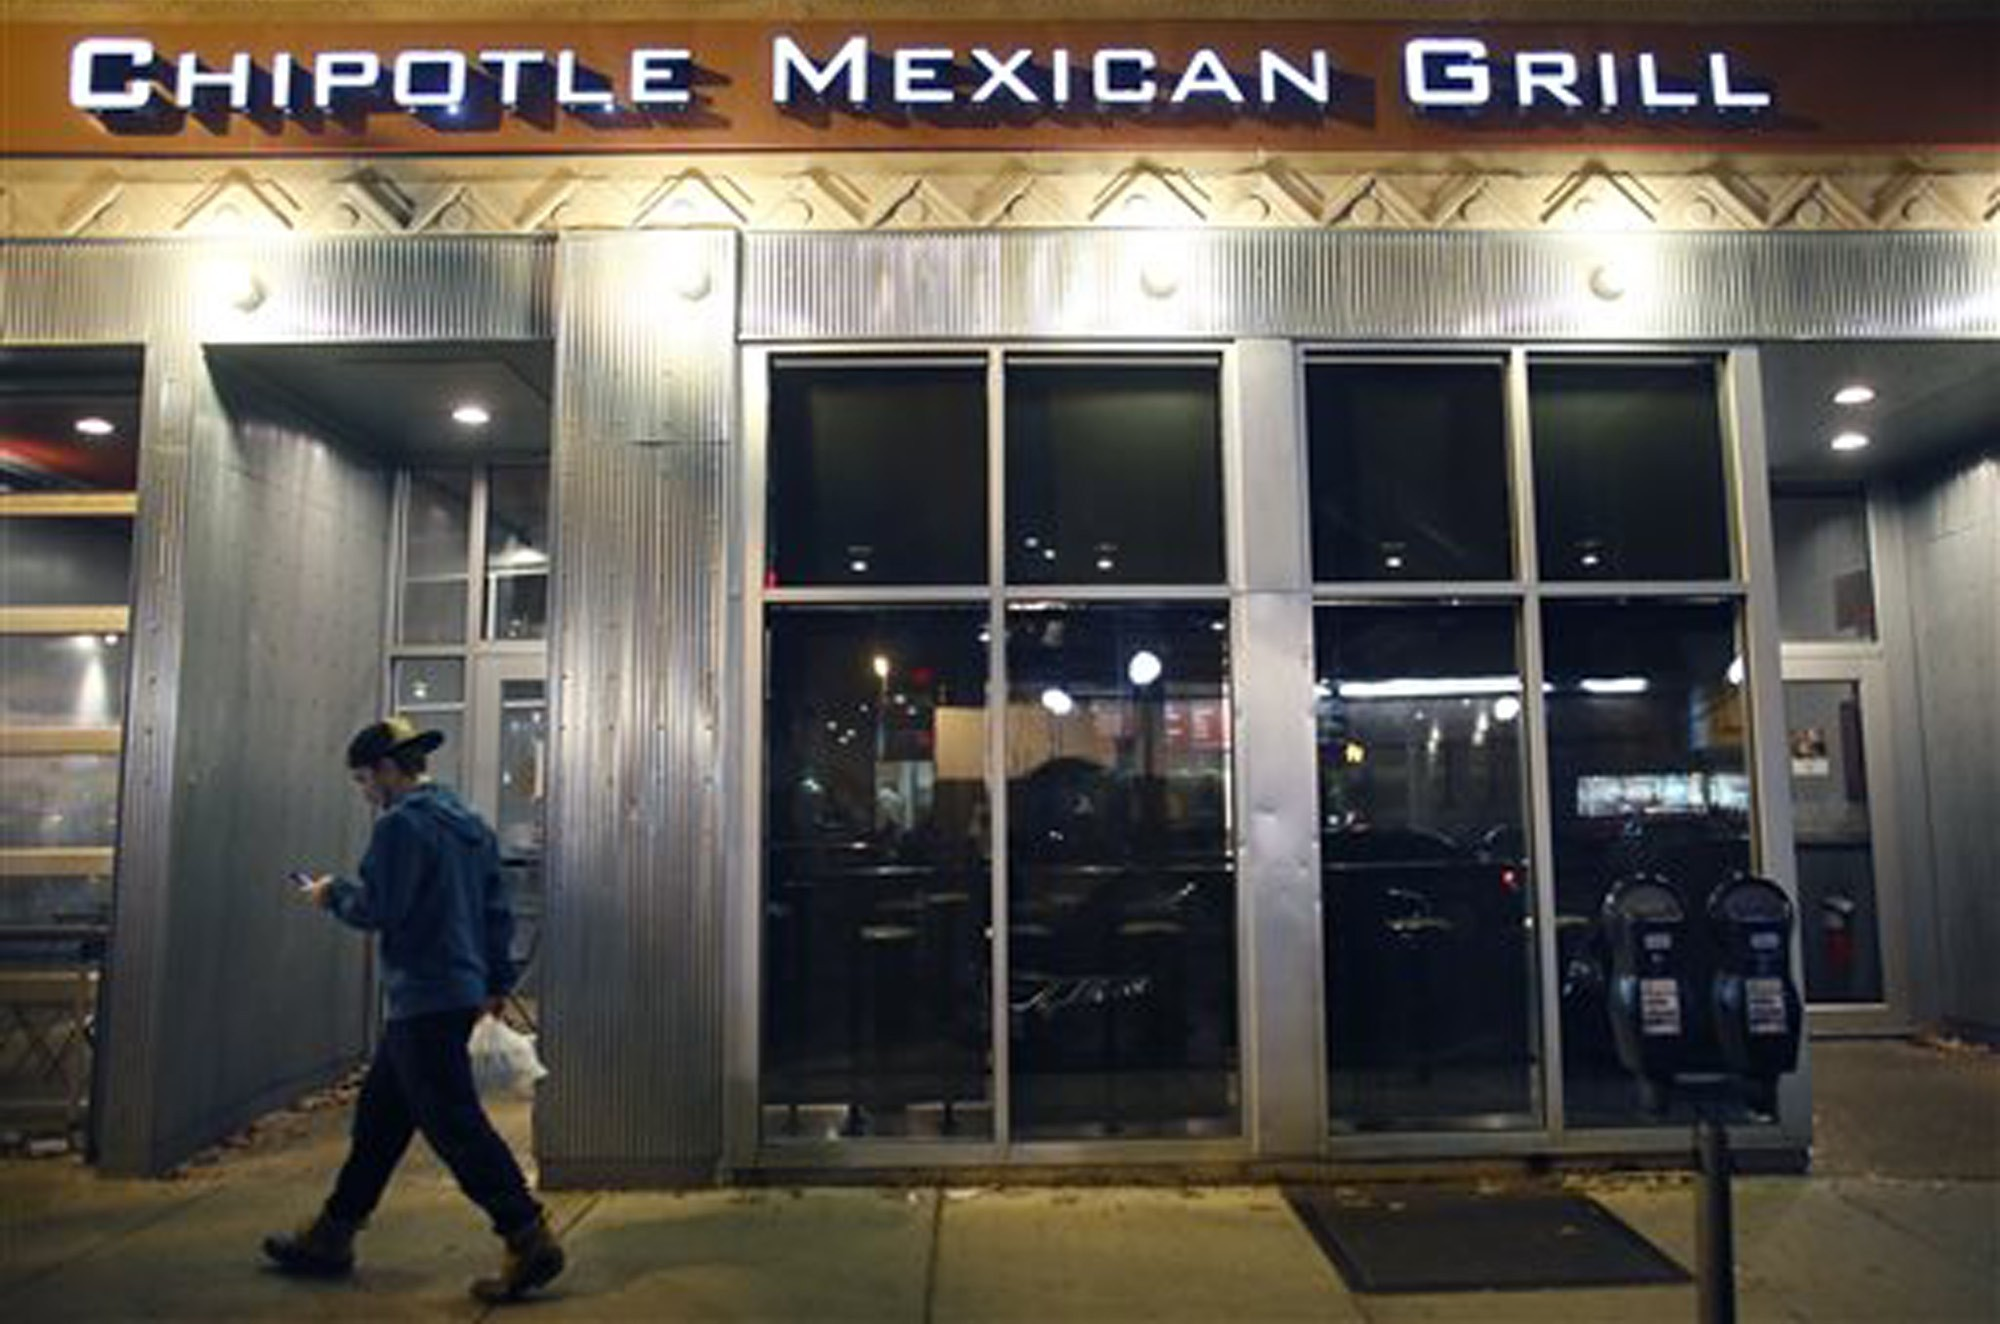 A man walks near a closed Chipotle restaurant on Monday in the Cleveland Circle neighborhood of Boston.